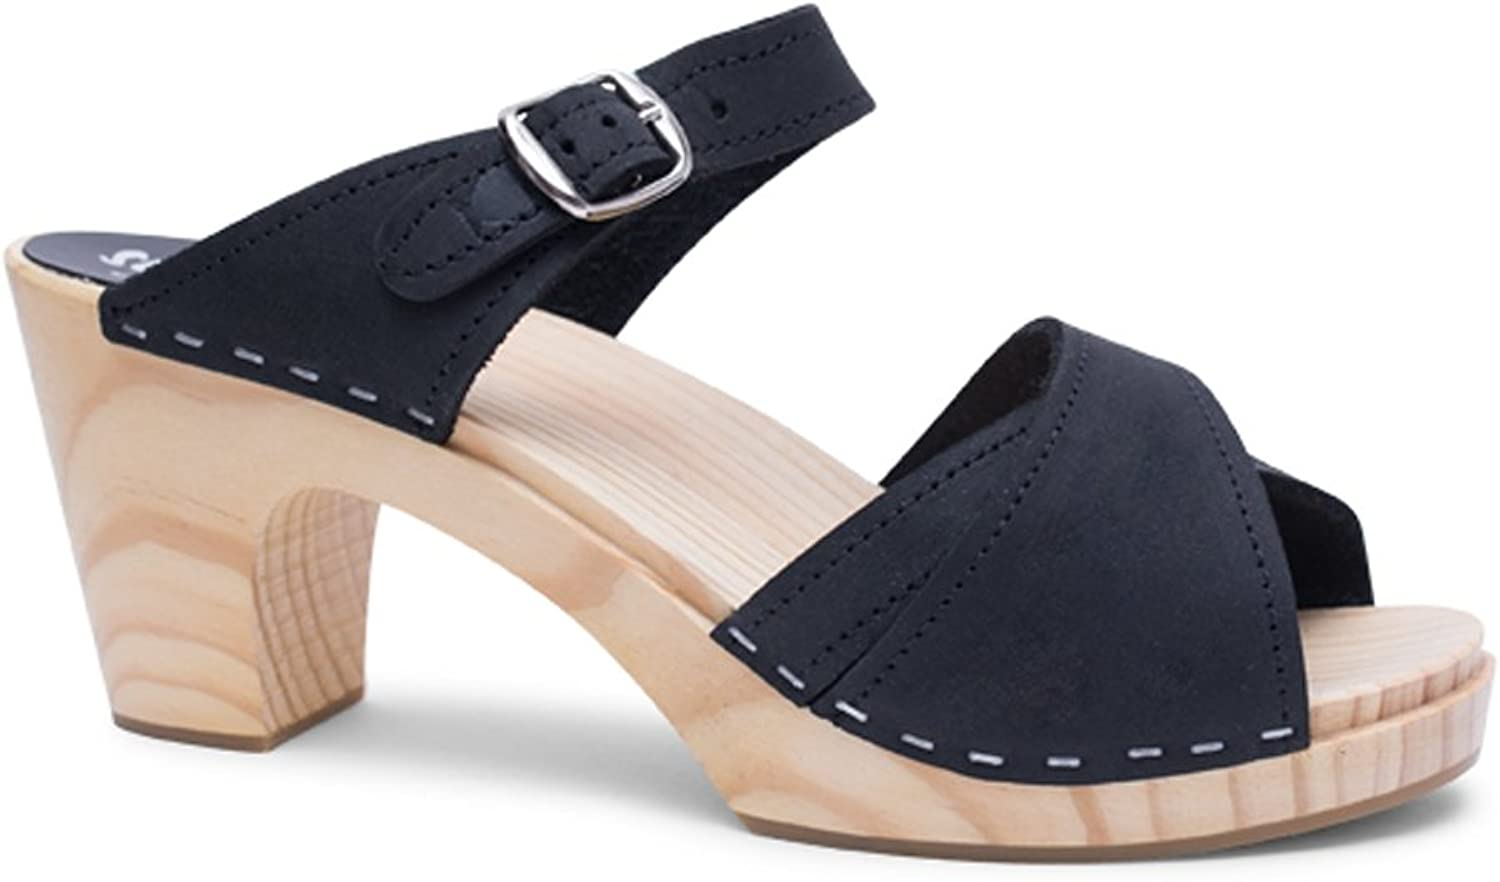 Sandgrens Swedish Clog Sandals High Rise Wooden Heel for Women   Dubai